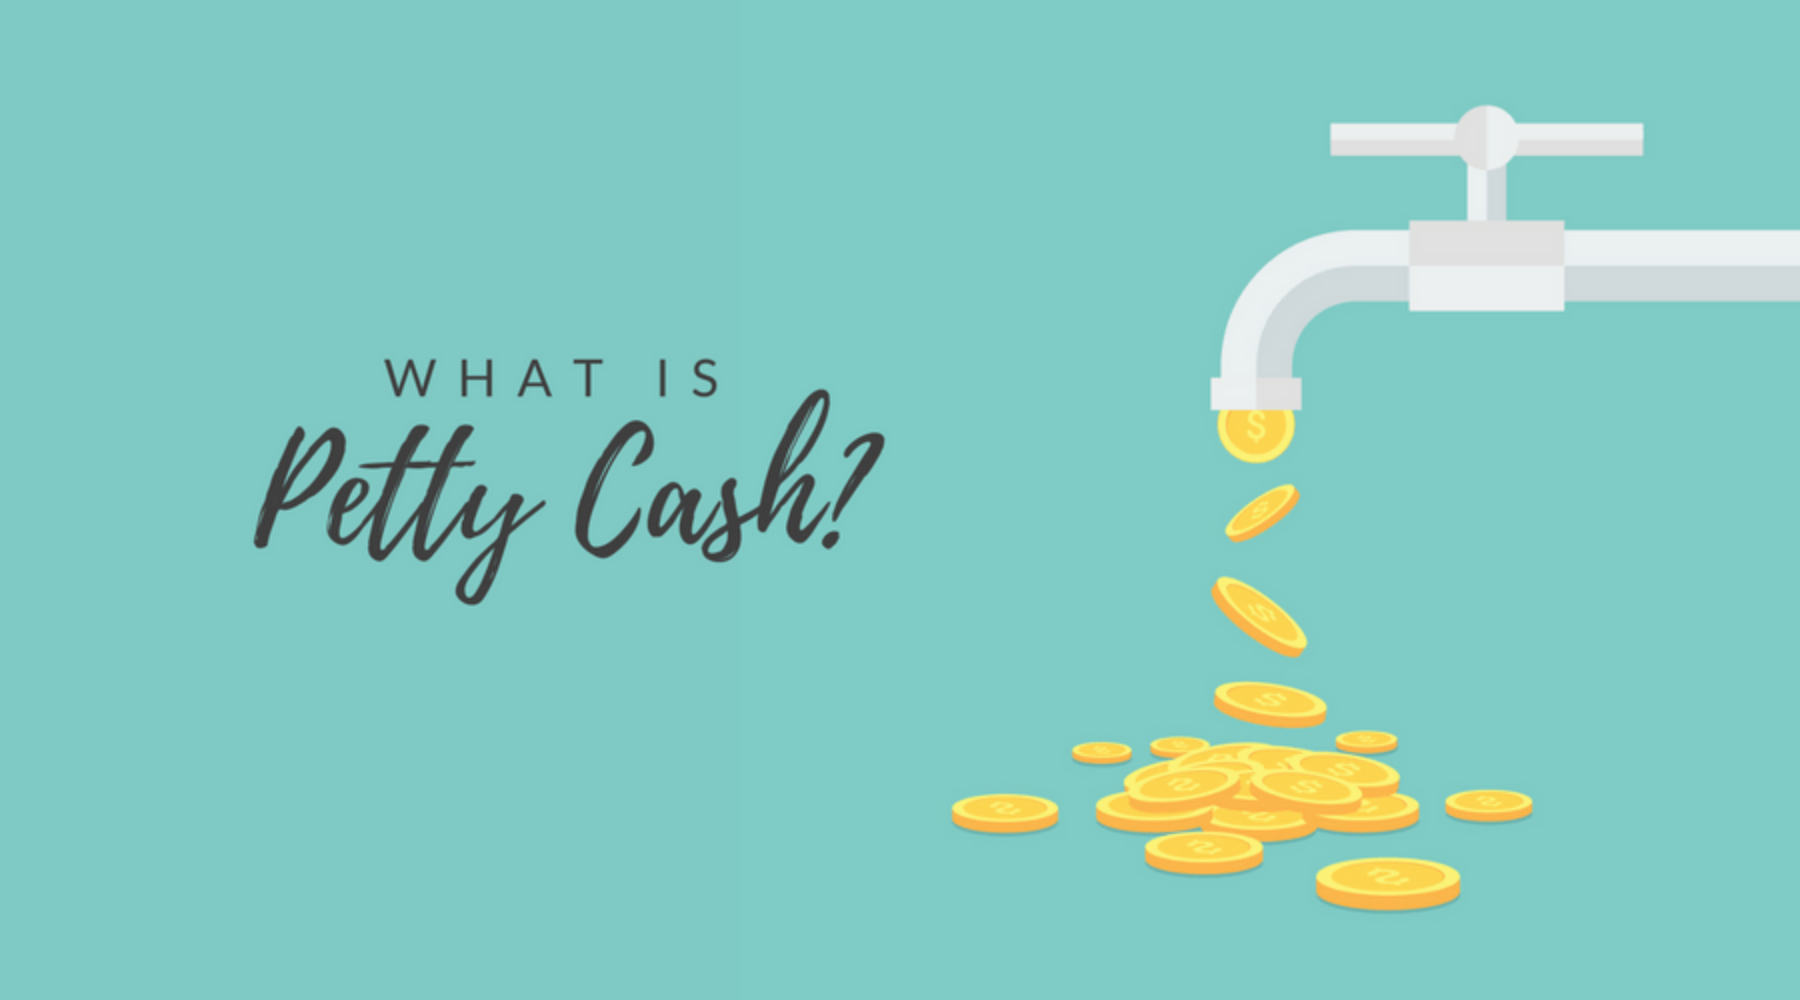 What Is Petty Cash and How Is It Used?